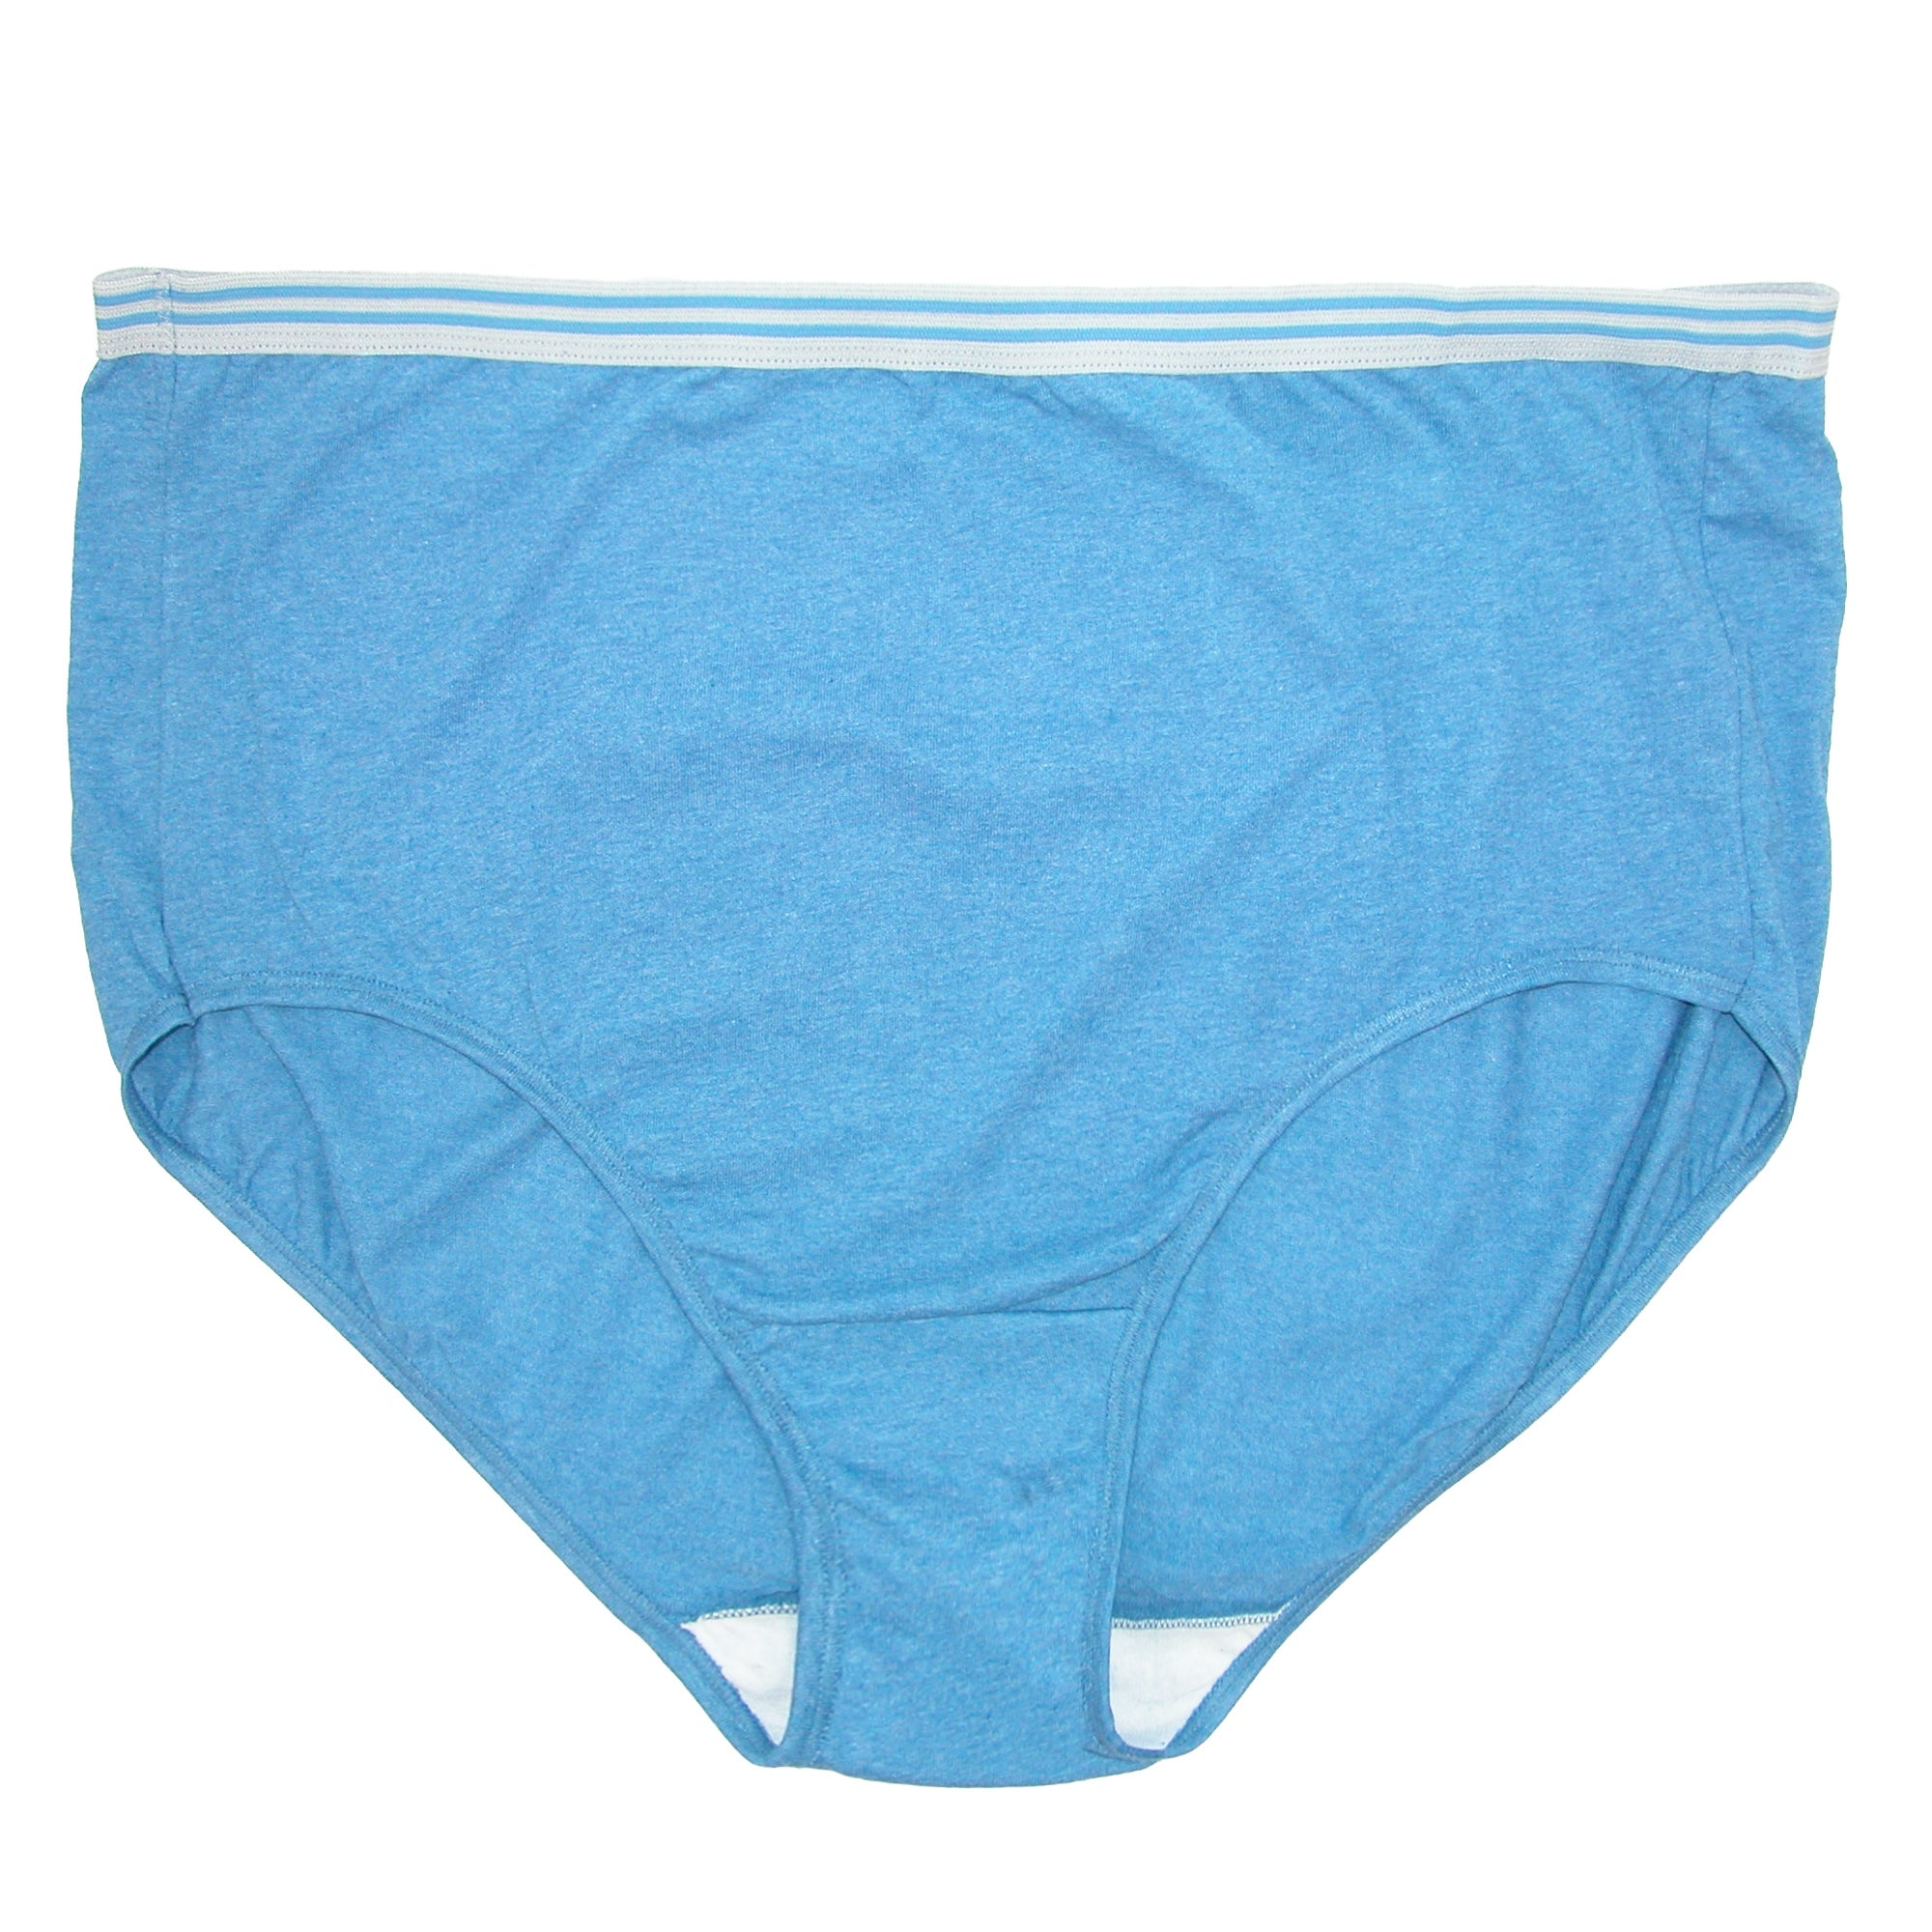 adcc1d6fc4a3f0 Shop Fruit of the Loom Women's Plus Size Heathered Briefs Underwear (5 Pair  Pack) - Free Shipping On Orders Over $45 - Overstock - 21147319